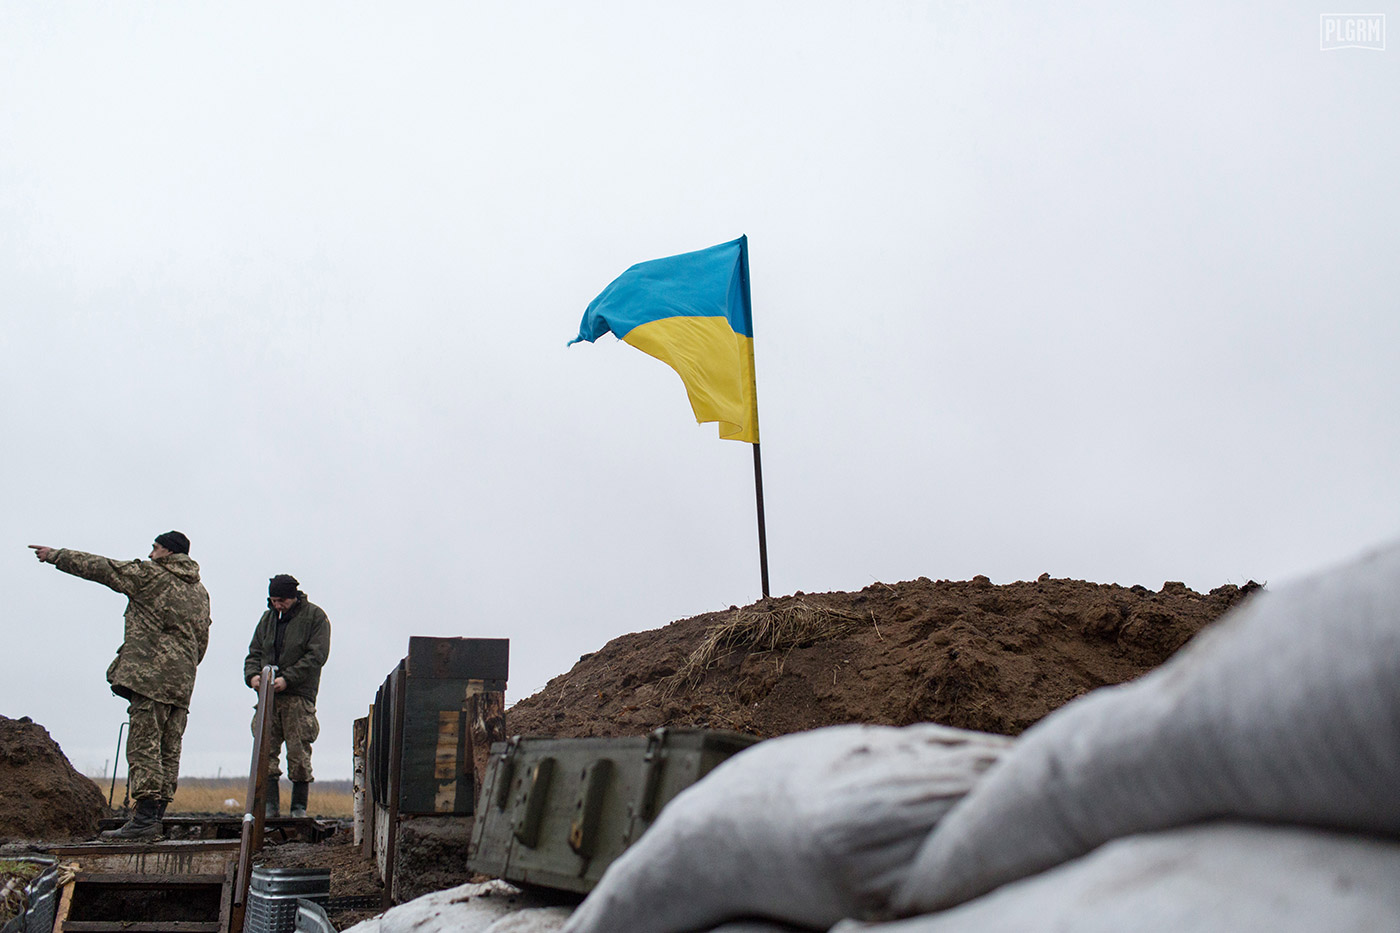 The Ukrainian flag flies in the wind over Ukrainian positions, while two soldiers talk about the situation in Donetsk.